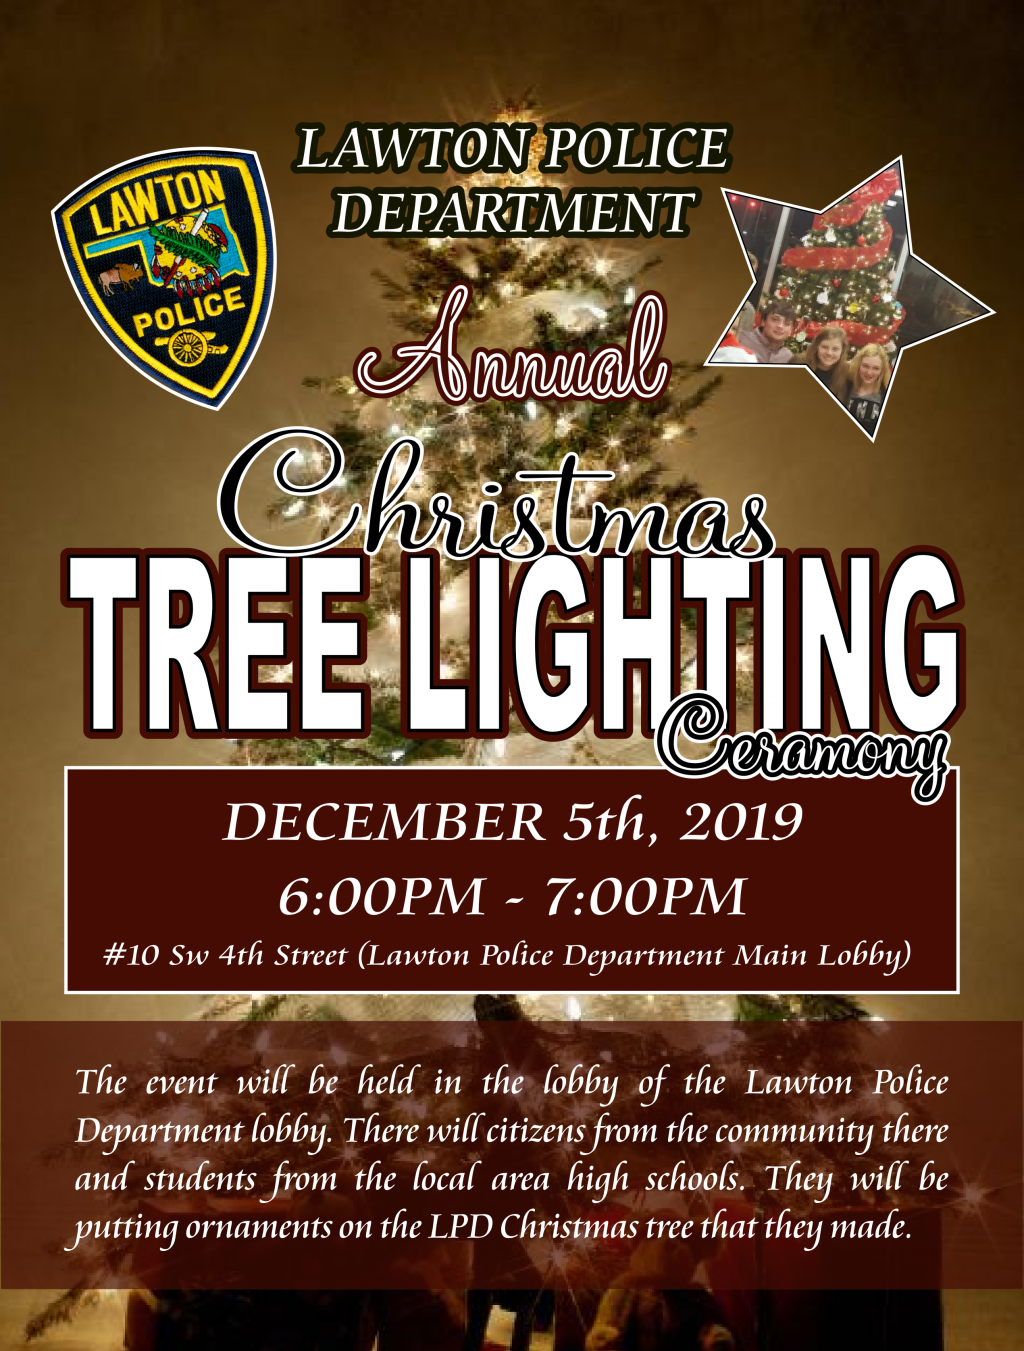 LPD Christmas Tree Lighting